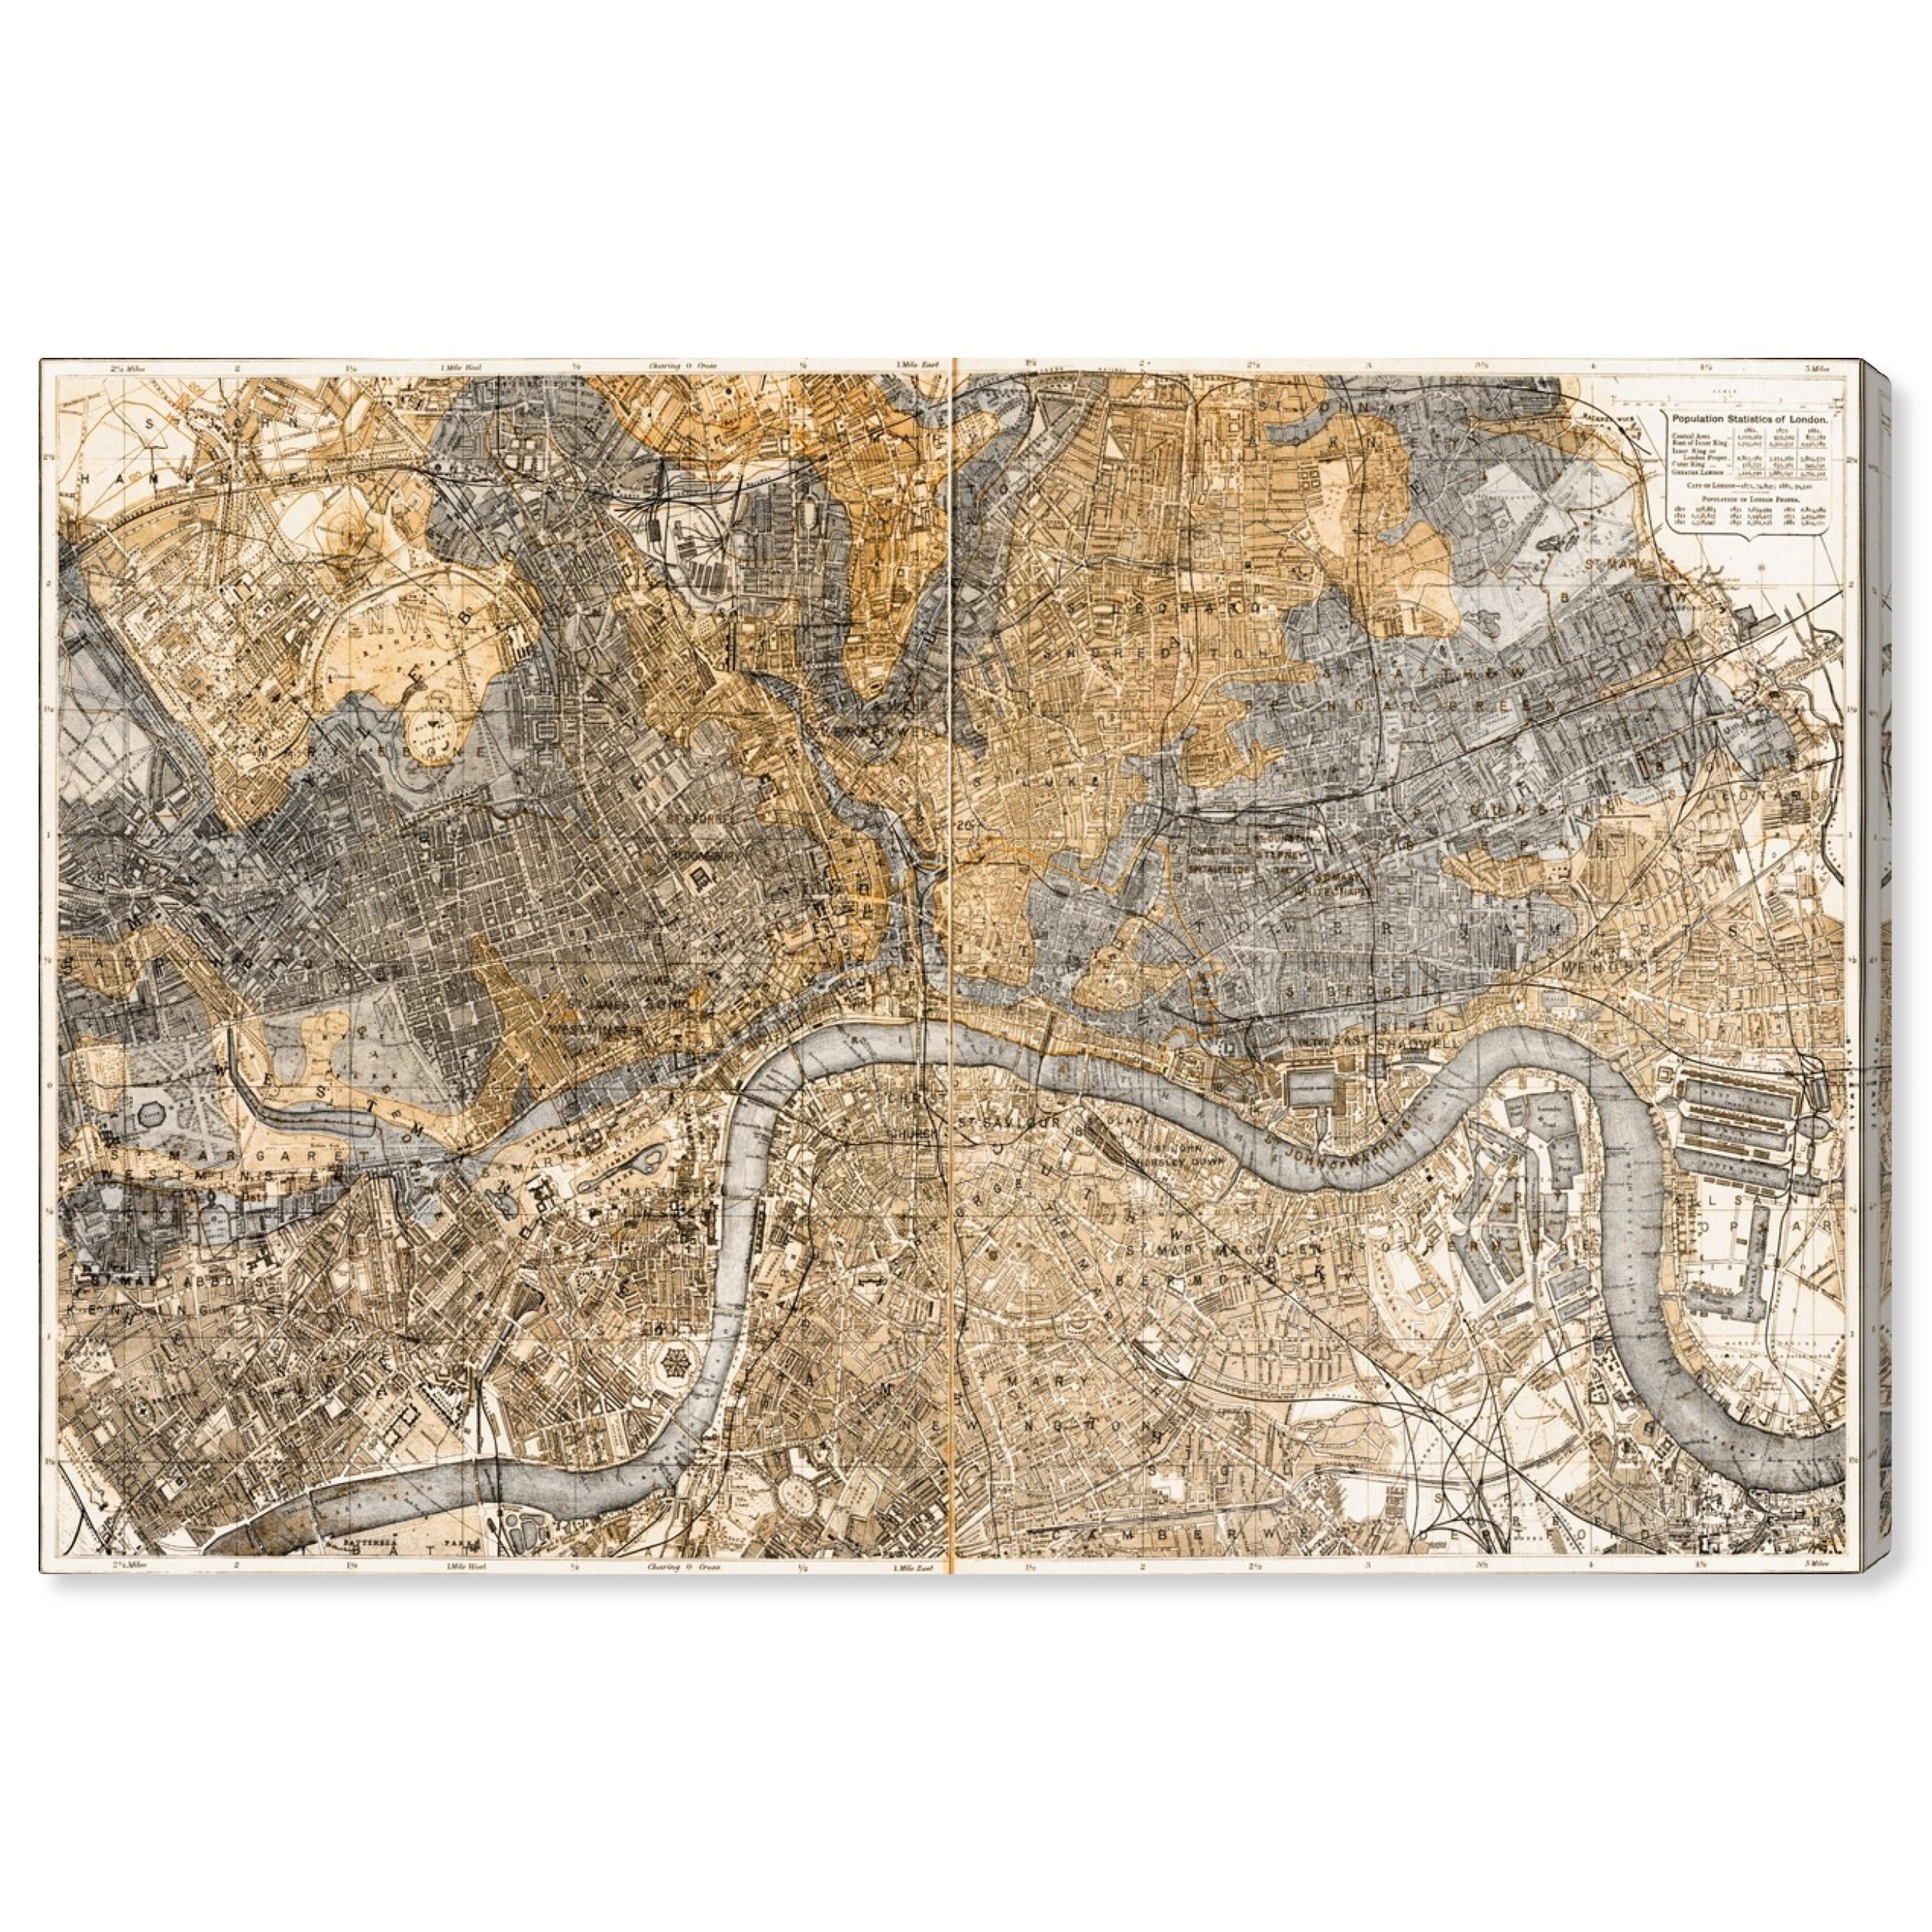 Oliver Gal 'London 1883 Map' Maps and Flags Wall Art Canvas Print - on map of africa, map of the us, map of greece, map of senegal, map of the mediterranean, map of tangier, map of atlantic ocean, map of gibraltar, map of fez, map of world, map of romania, map of marrakech, map of nicaragua, map of austria, map of mali, map of algeria, map of honduras, map of saint martin, map of western sahara, map of mongolia,